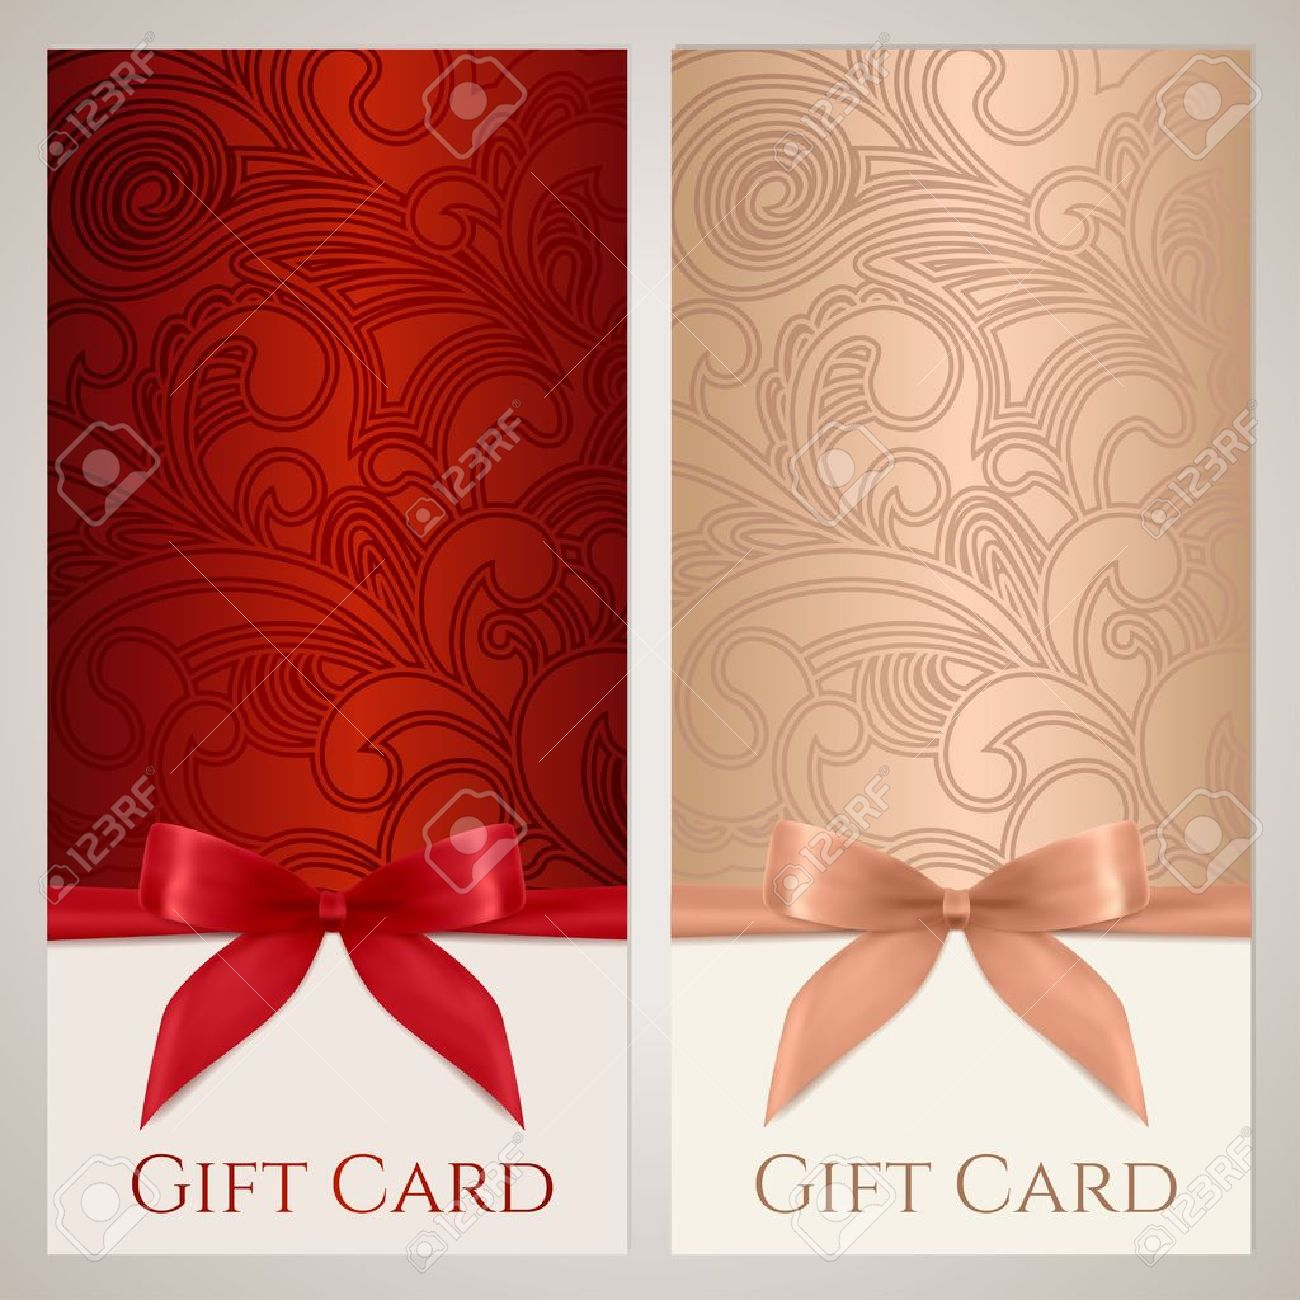 christmas coupon set stock illustrations cliparts and christmas coupon set gift certificate gift card voucher coupon template floral